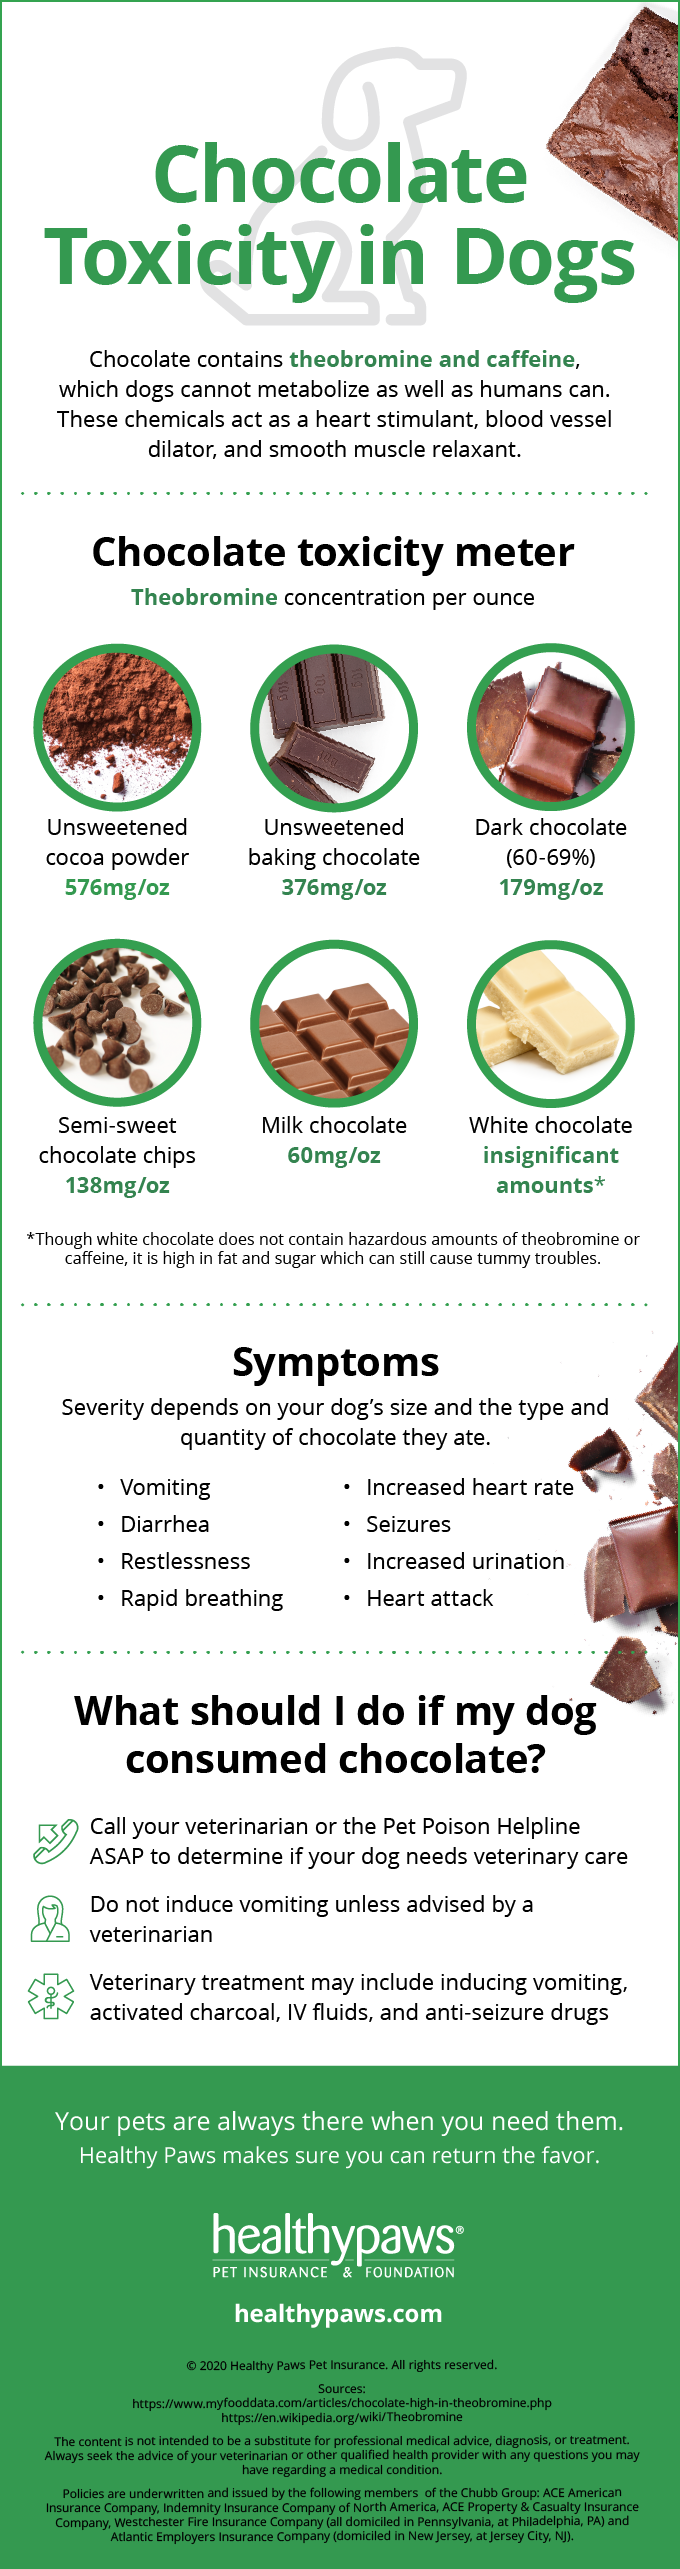 Infographic: Chocolate Toxicity in dogs